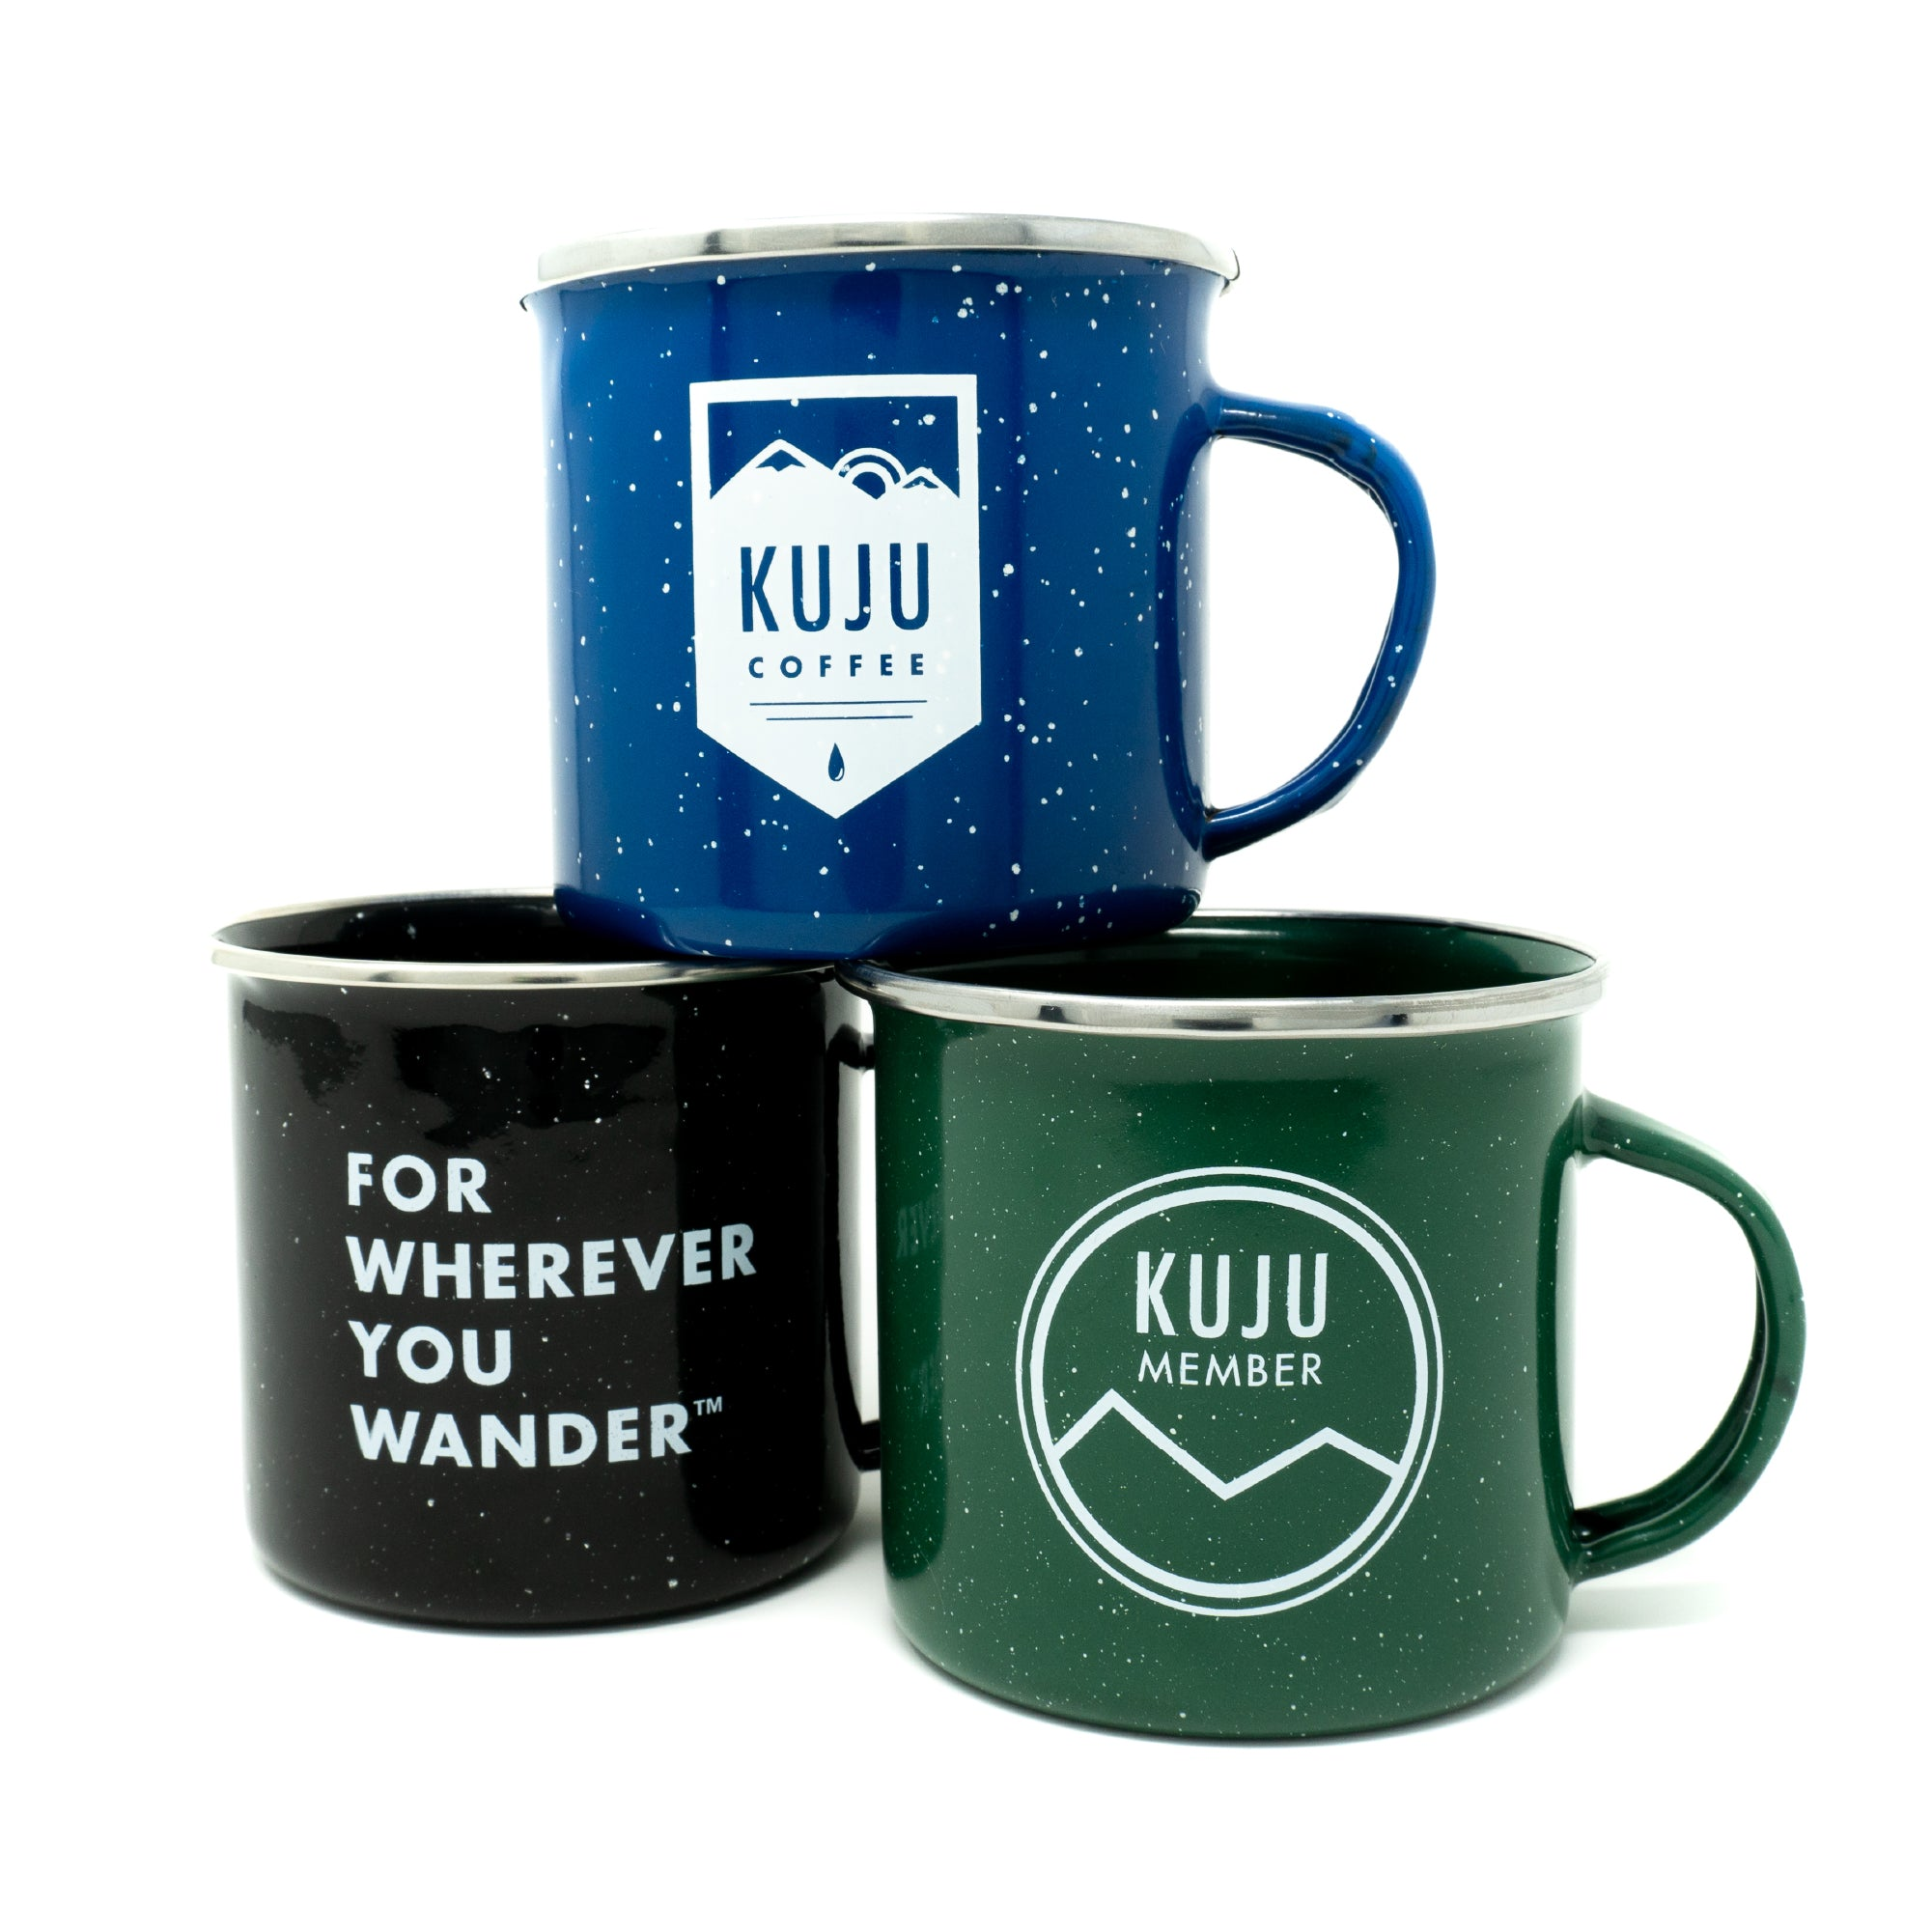 Ultimate Kuju Lover's Bundle - Kuju Coffee